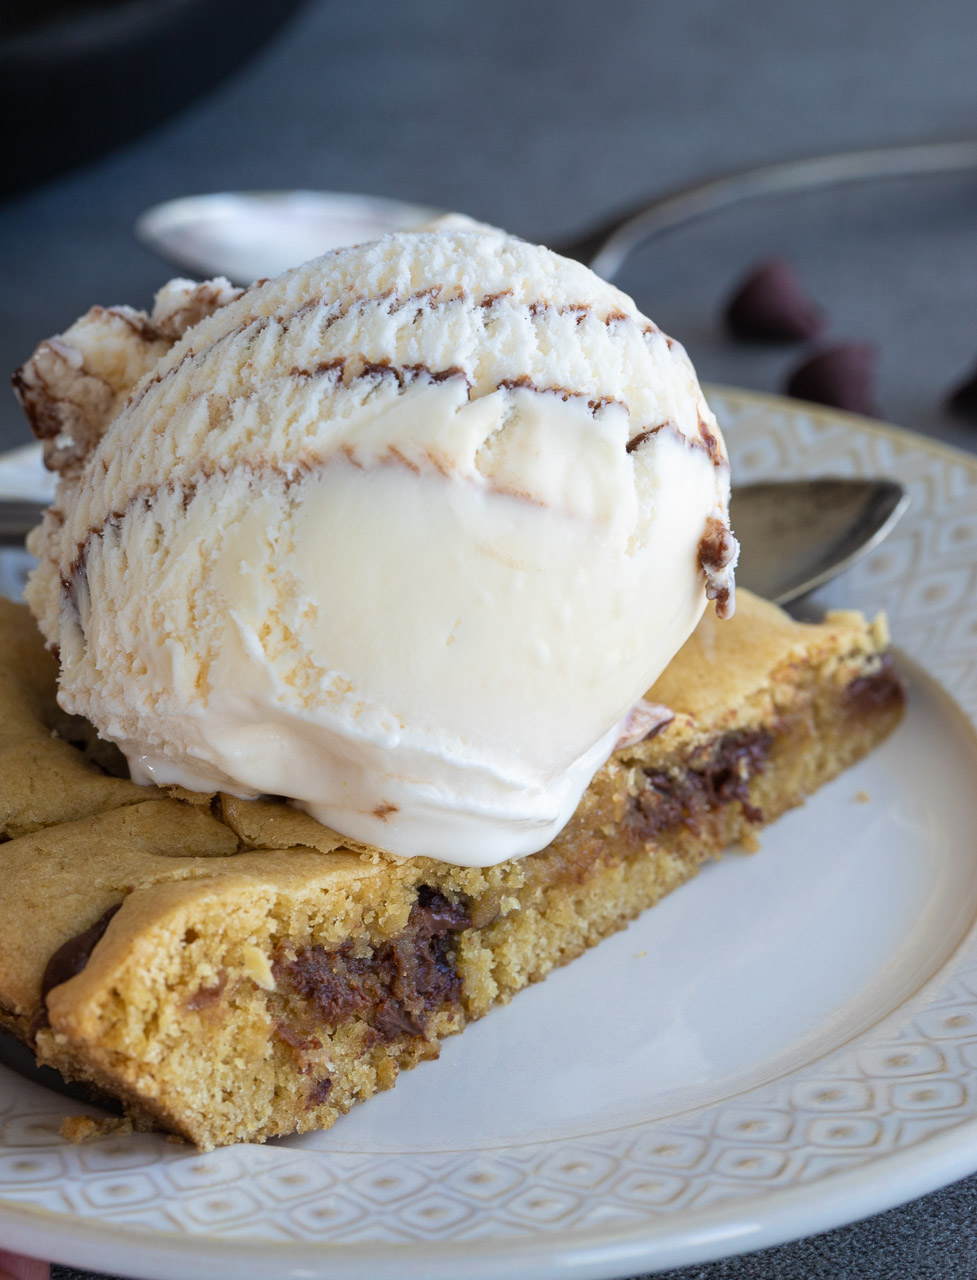 Skillet Cookie With ice cream on top.